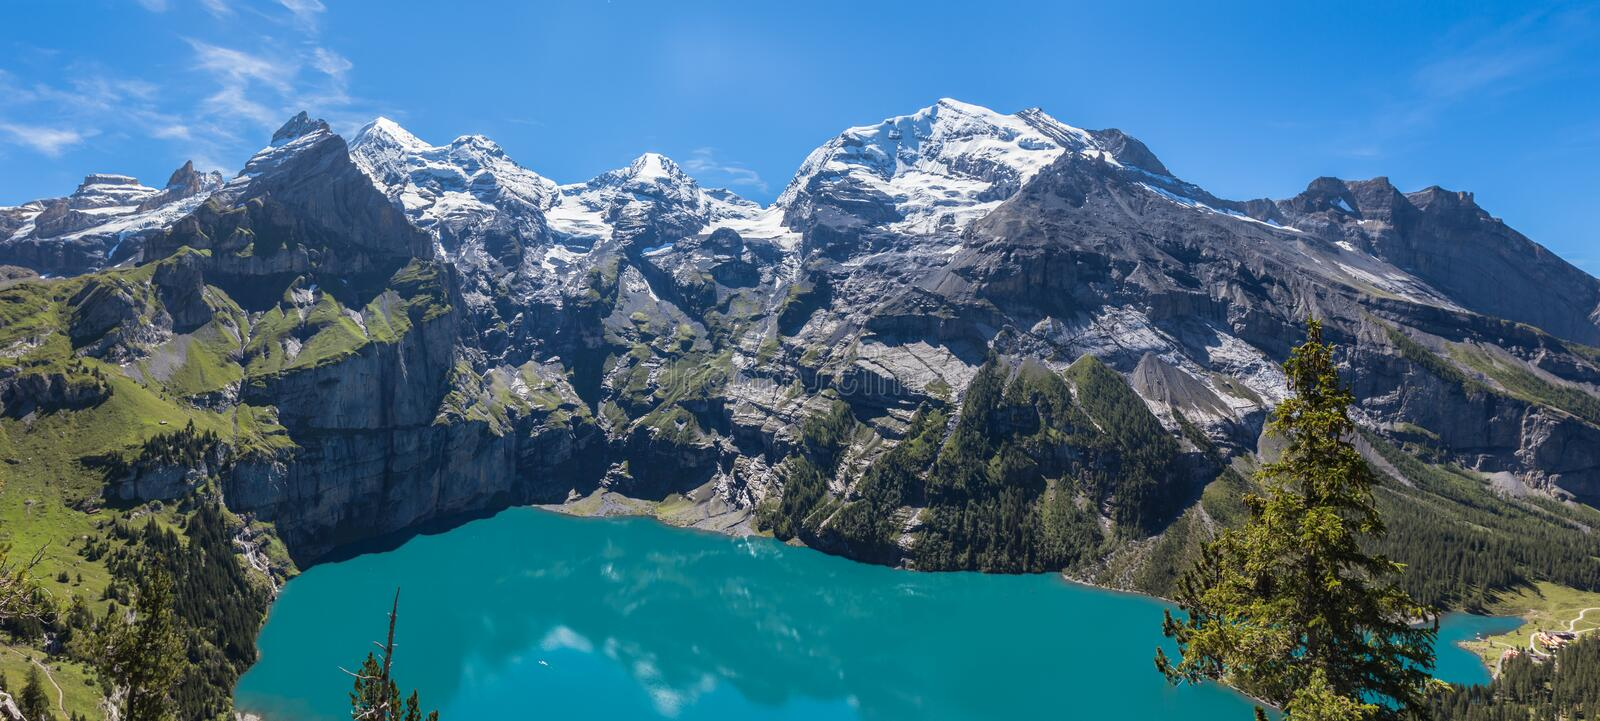 Panorama view of Oeschinensee (Oeschinen lake) on bernese oberland stock image